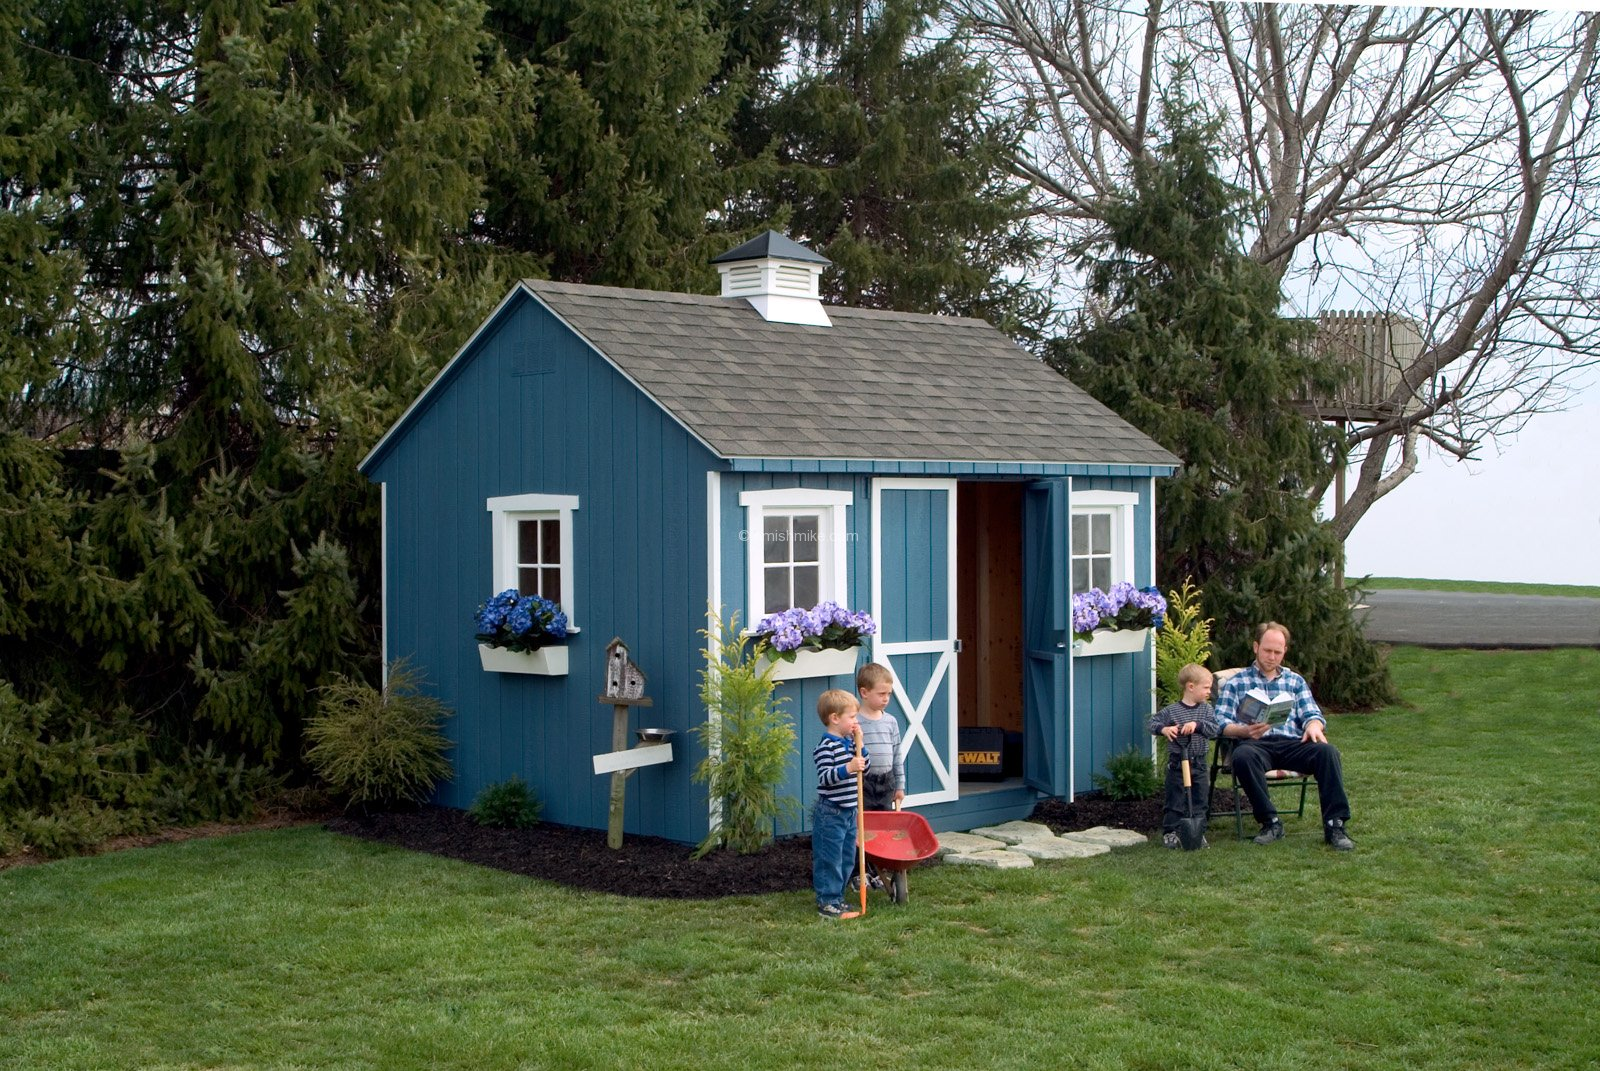 Traditional Series Cape Cod Sheds Amish Mike Amish Sheds Amish Barns Sheds Nj Sheds Barns